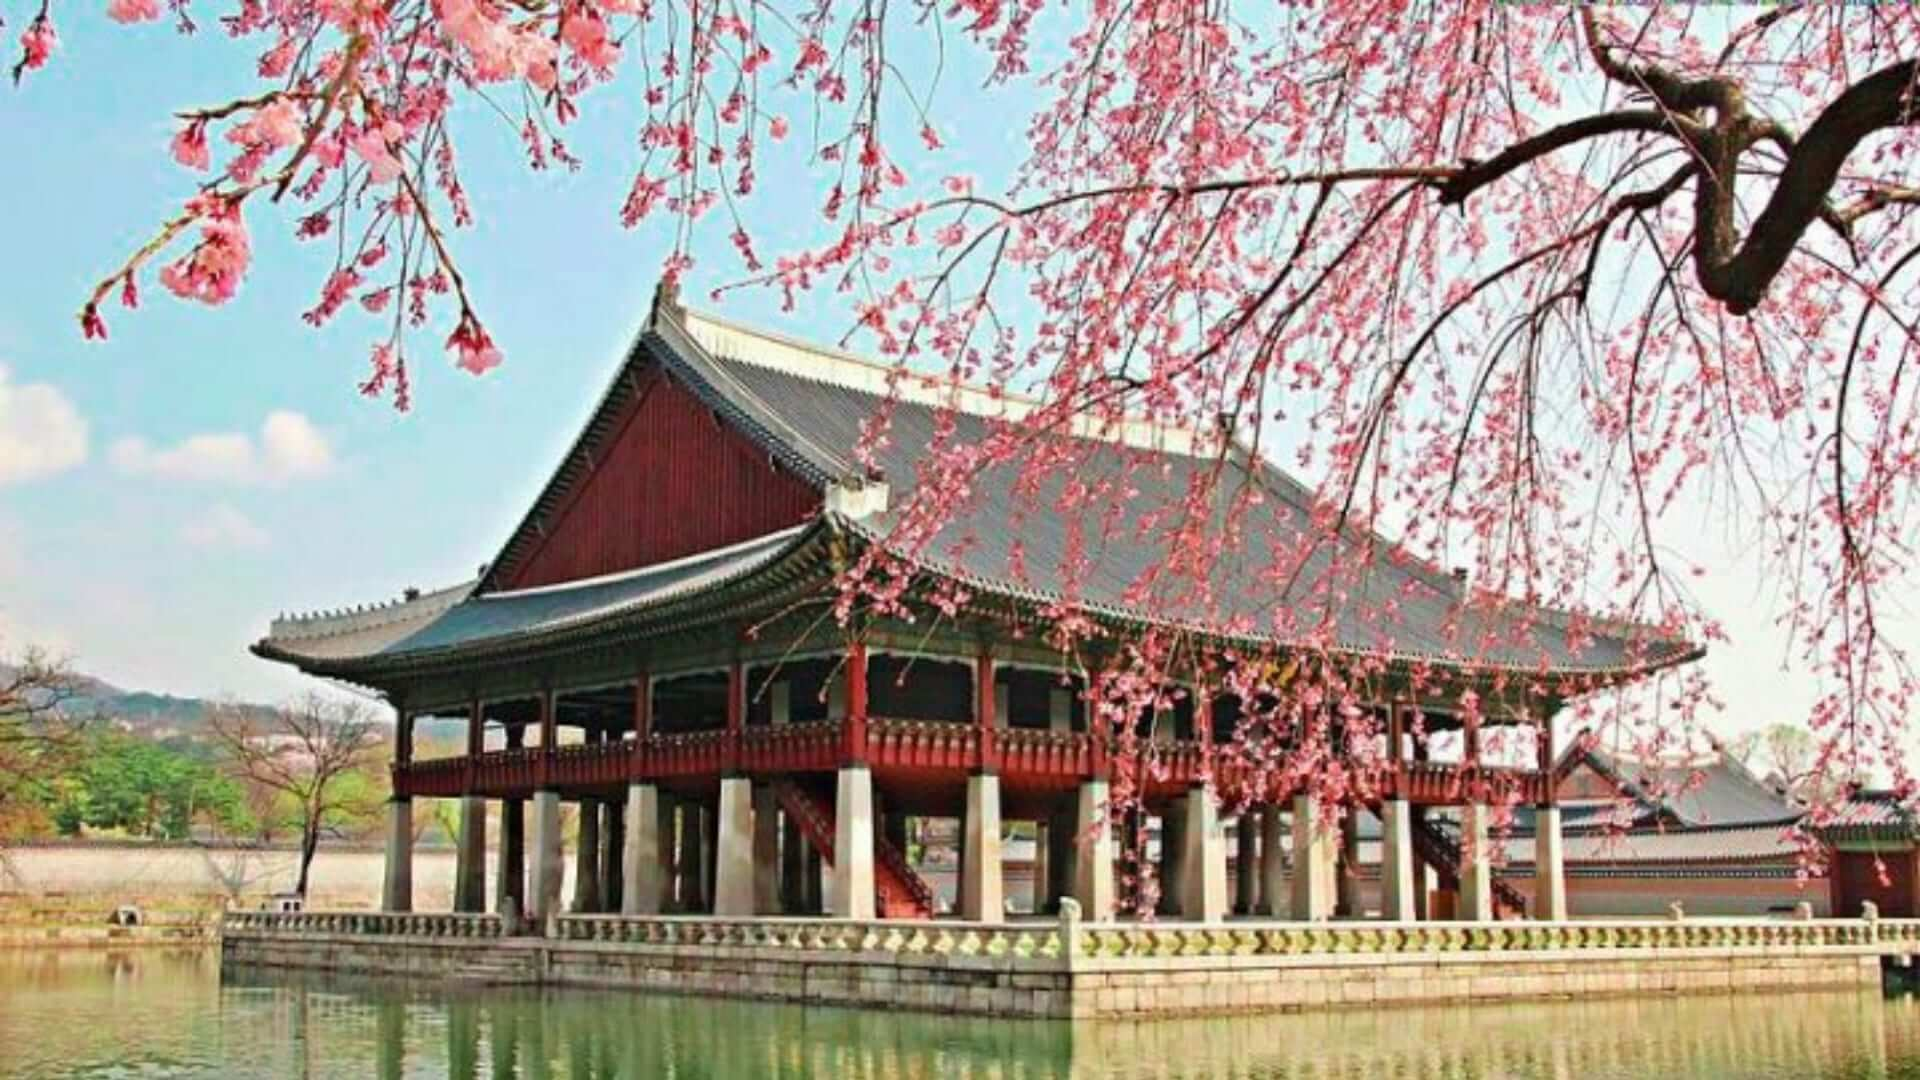 A red palace on water with trees with pink blossom in South-Korea.